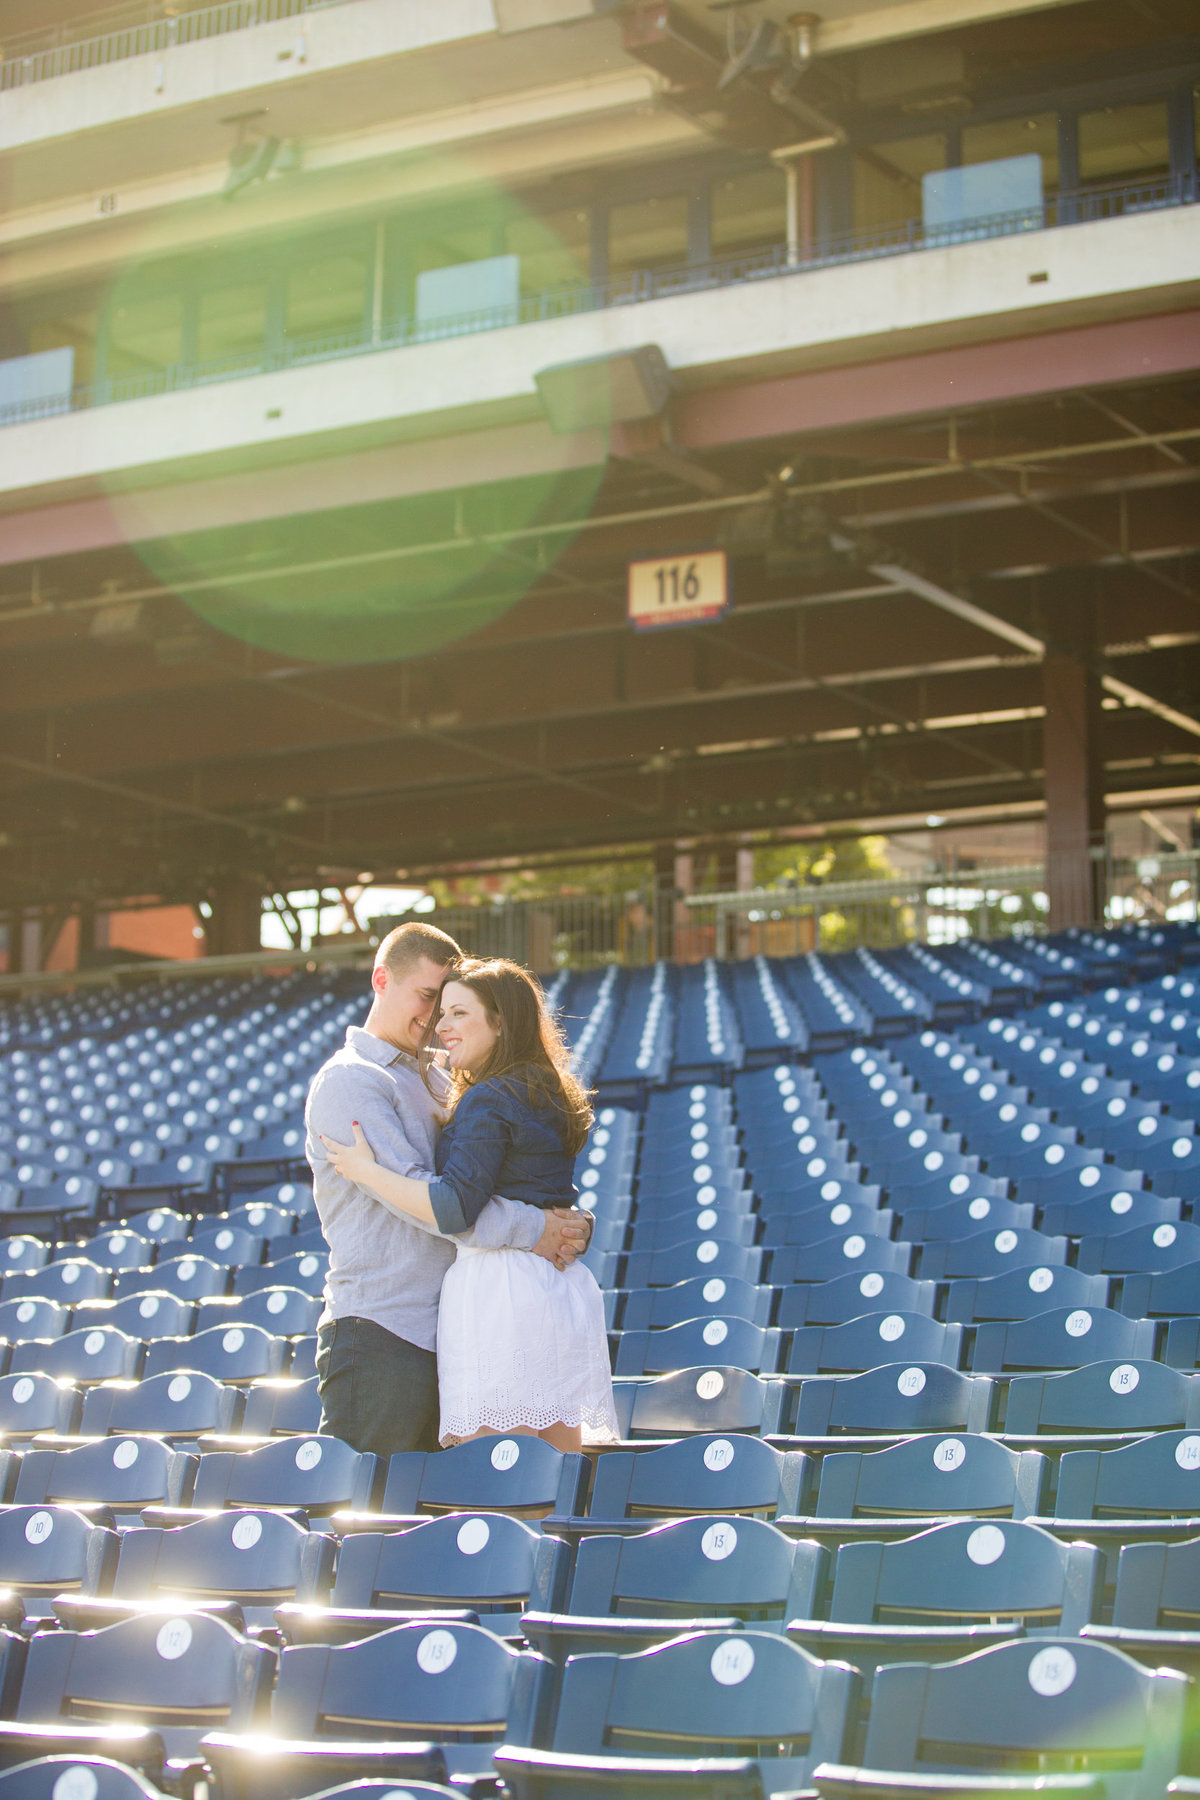 UncorkedStudios_WilliamsonEngagement_0187a